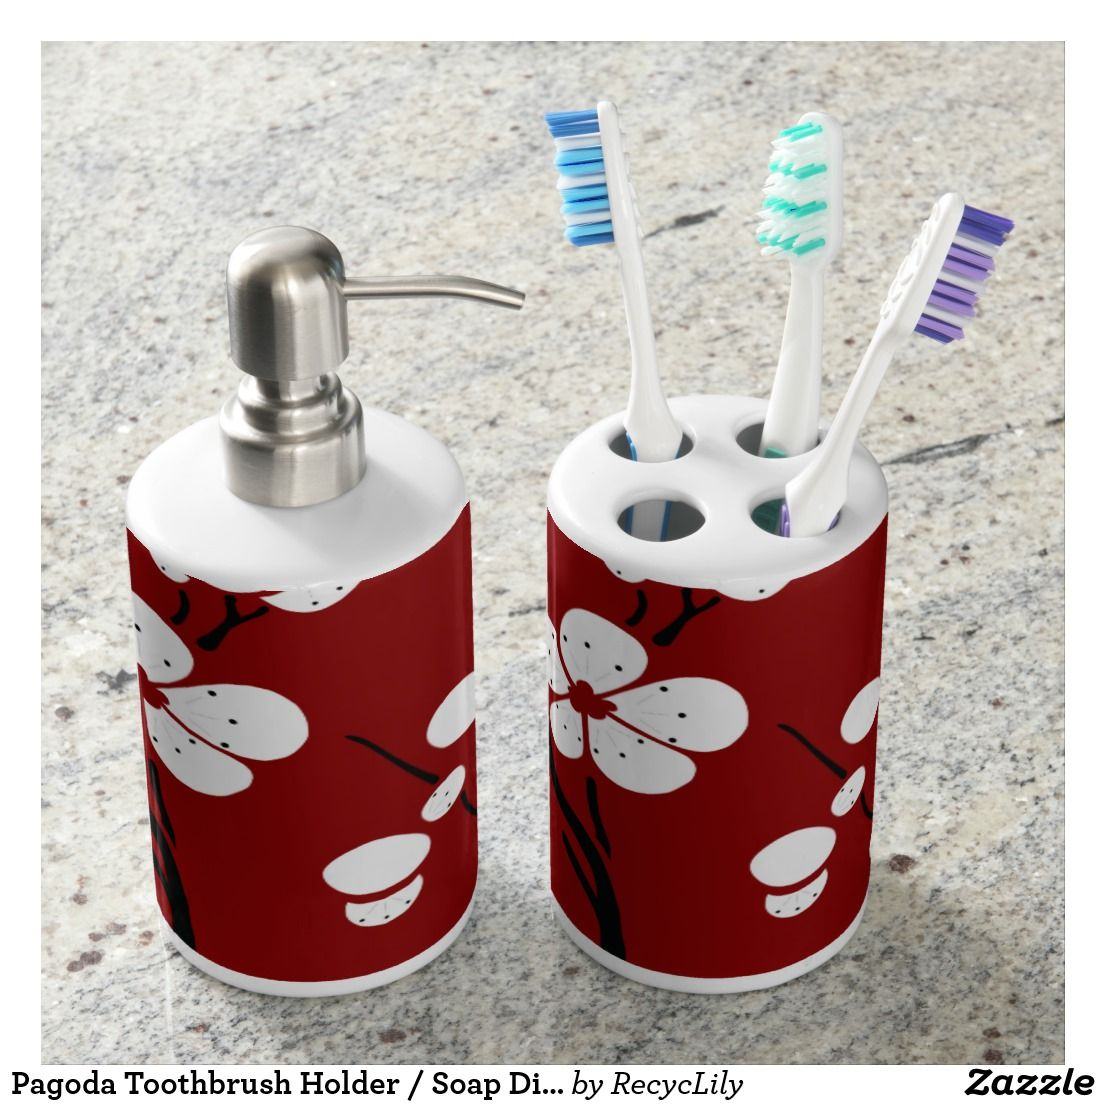 Red Toothbrush Holder Bathroom Accessories. Pagoda Toothbrush Holder Soap Dispenser In Red